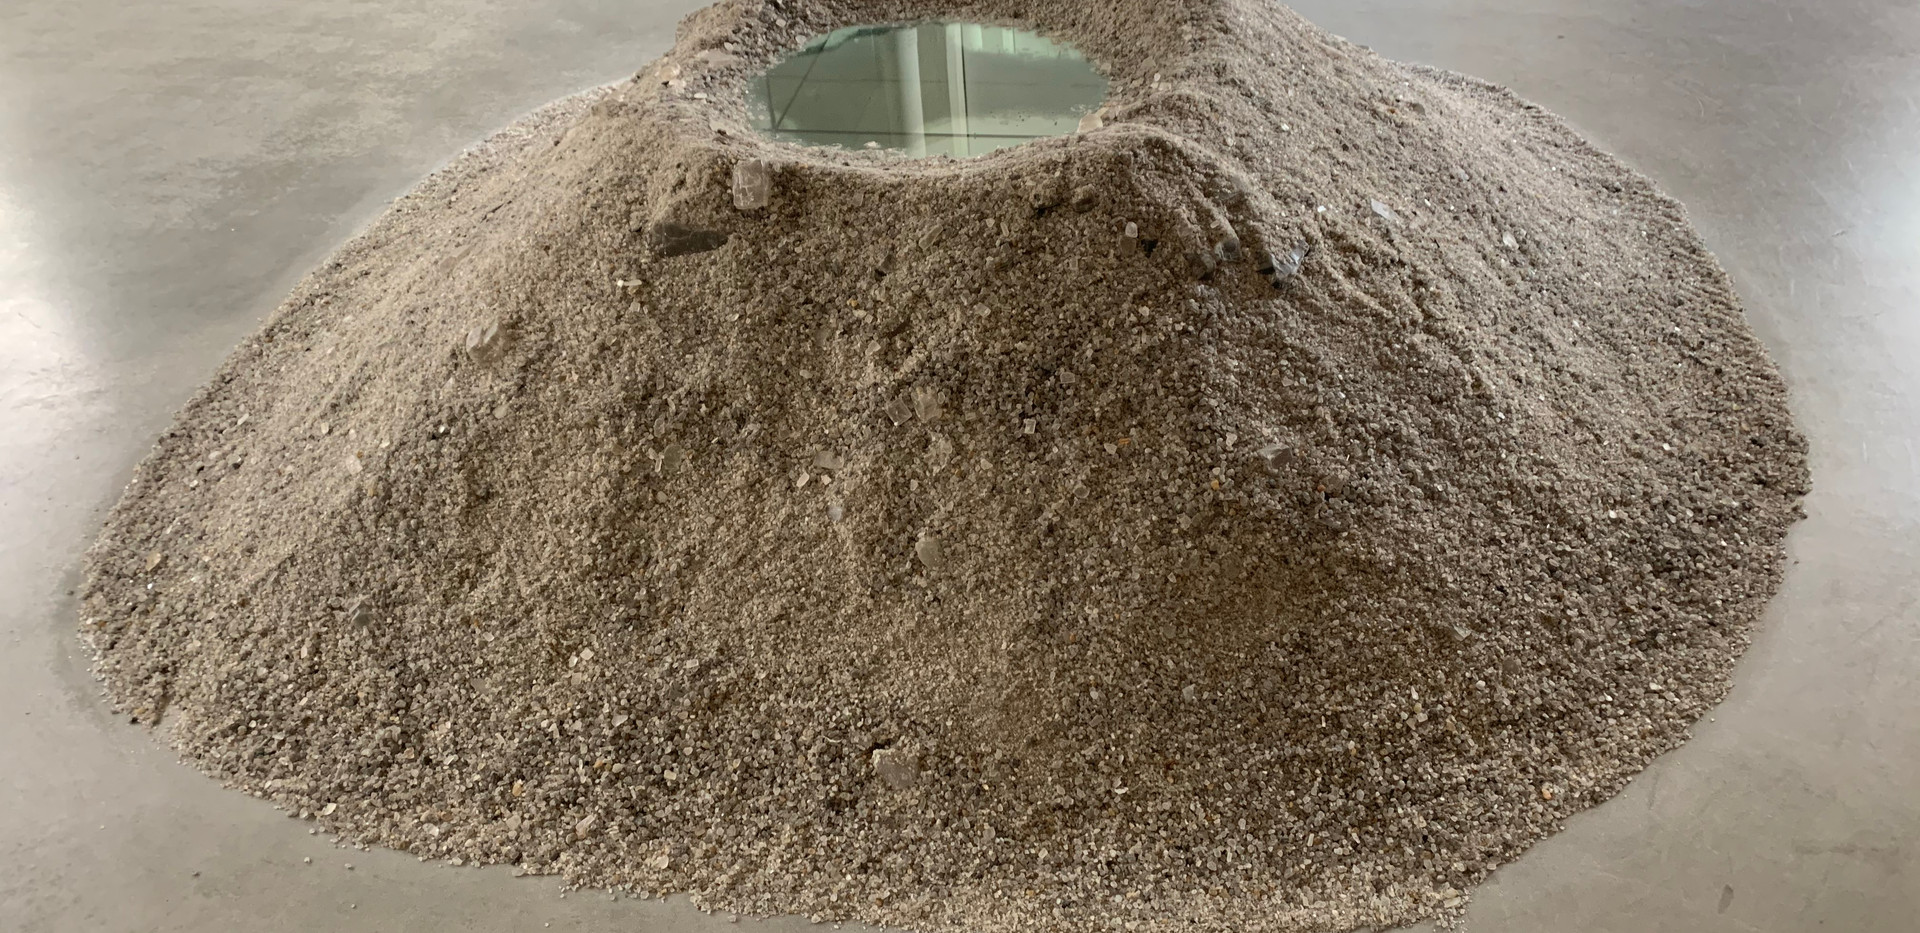 Robert Smithson, Closed Mirror Square (Cayuga Salt Mine Project), 1969